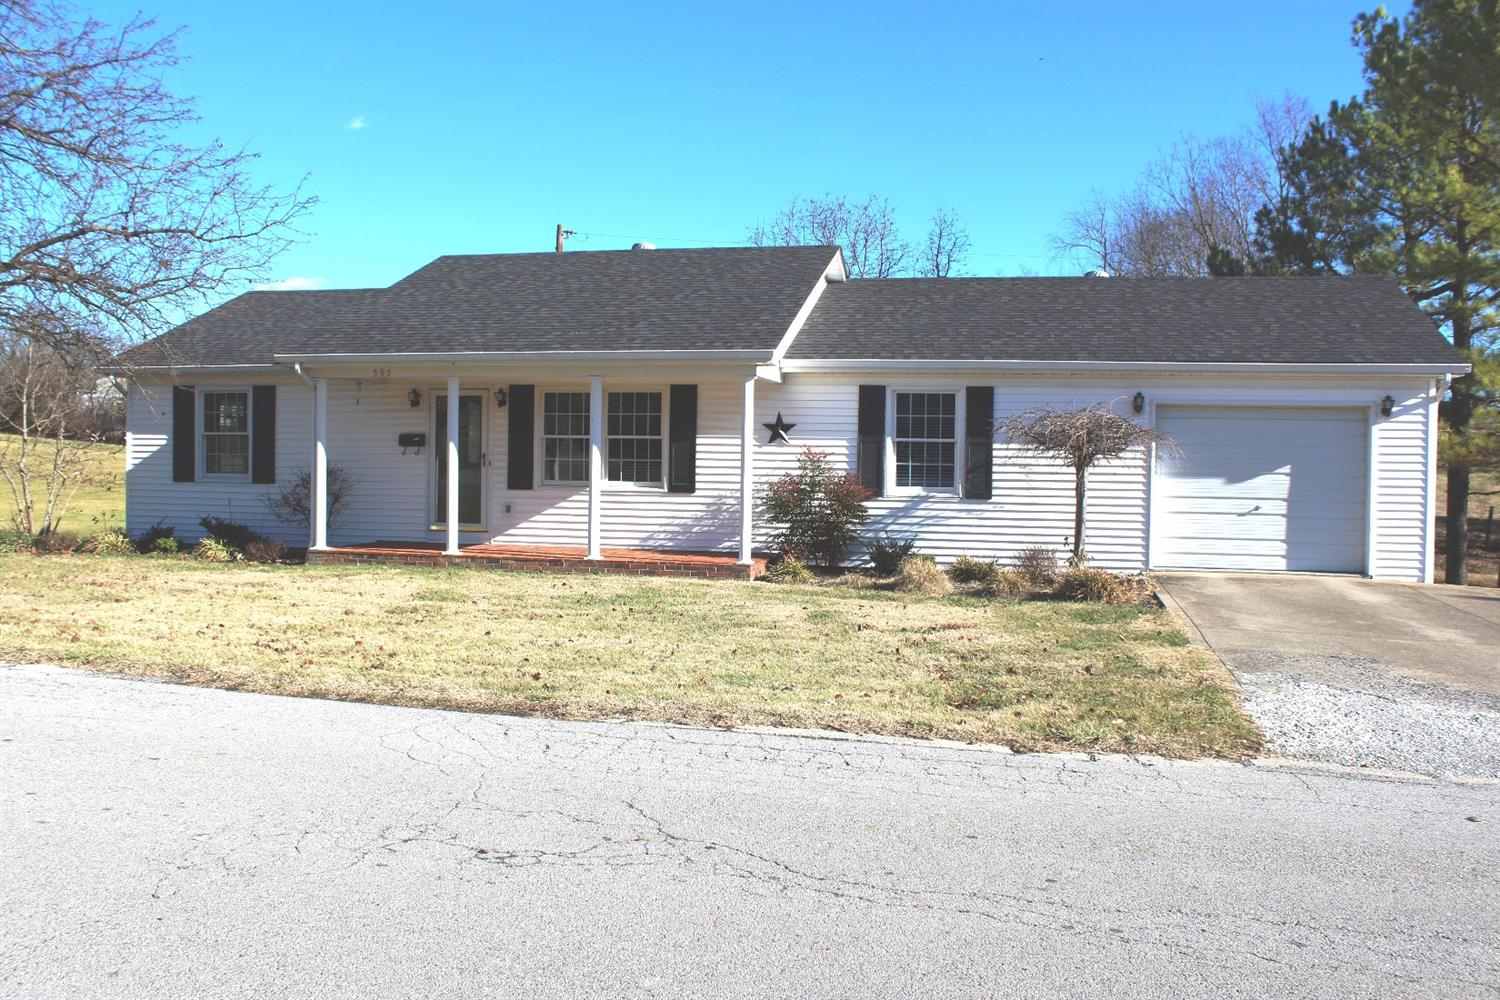 Home For Sale at 573 Lynn Dr, Harrodsburg, KY 40330